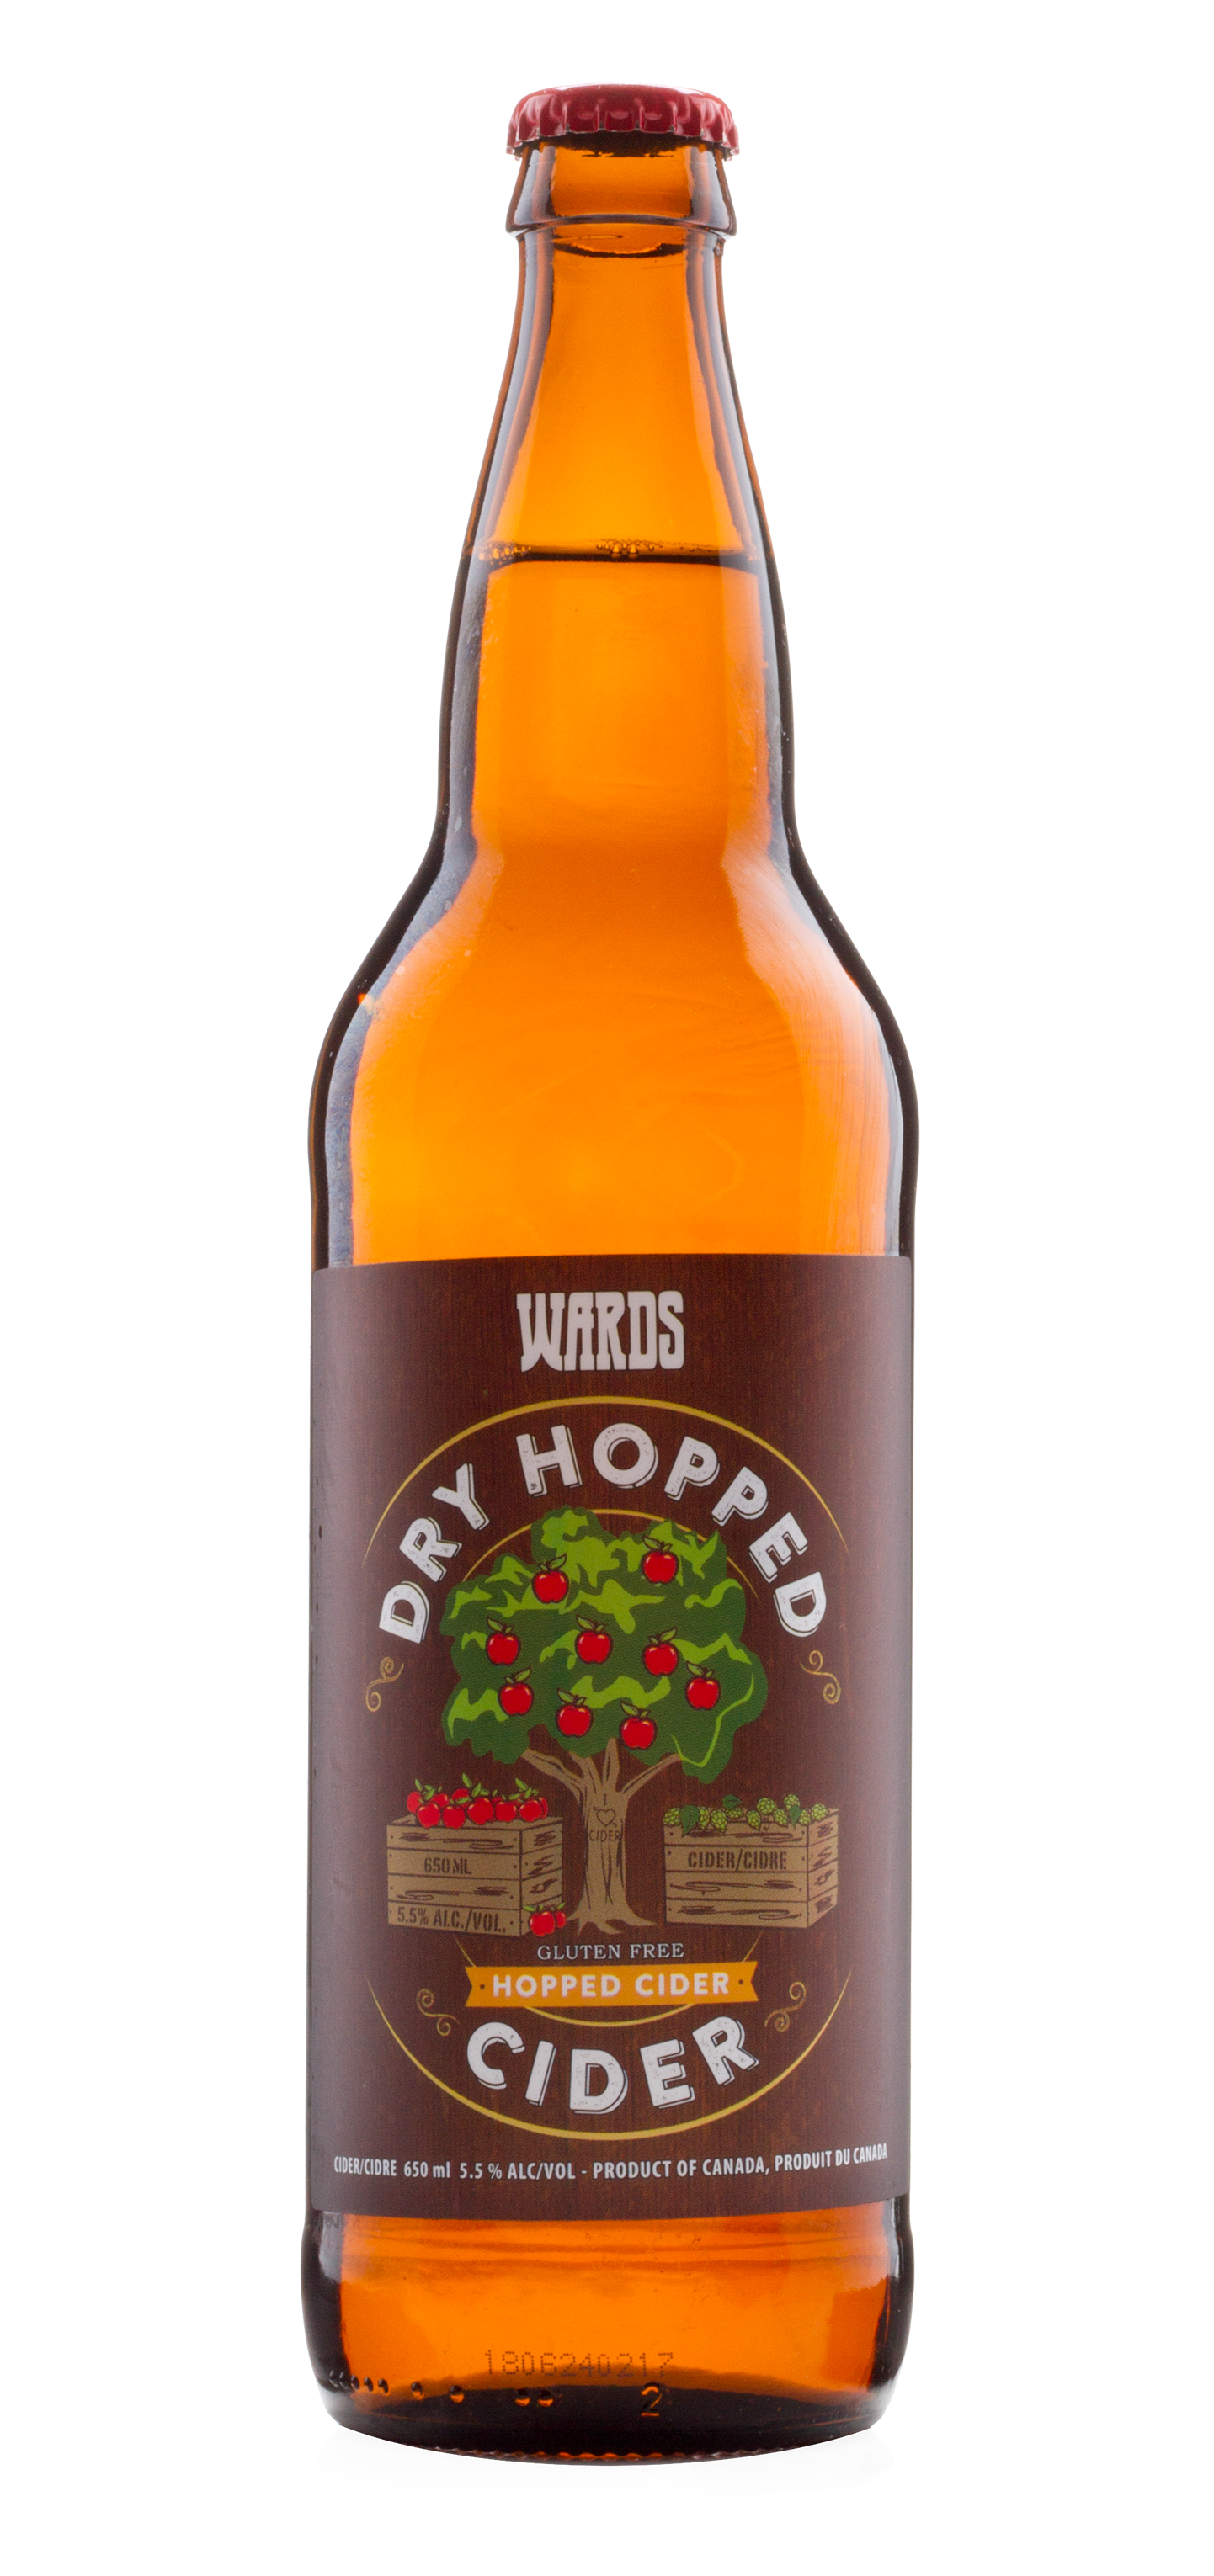 Wards Dry Hopped Cider